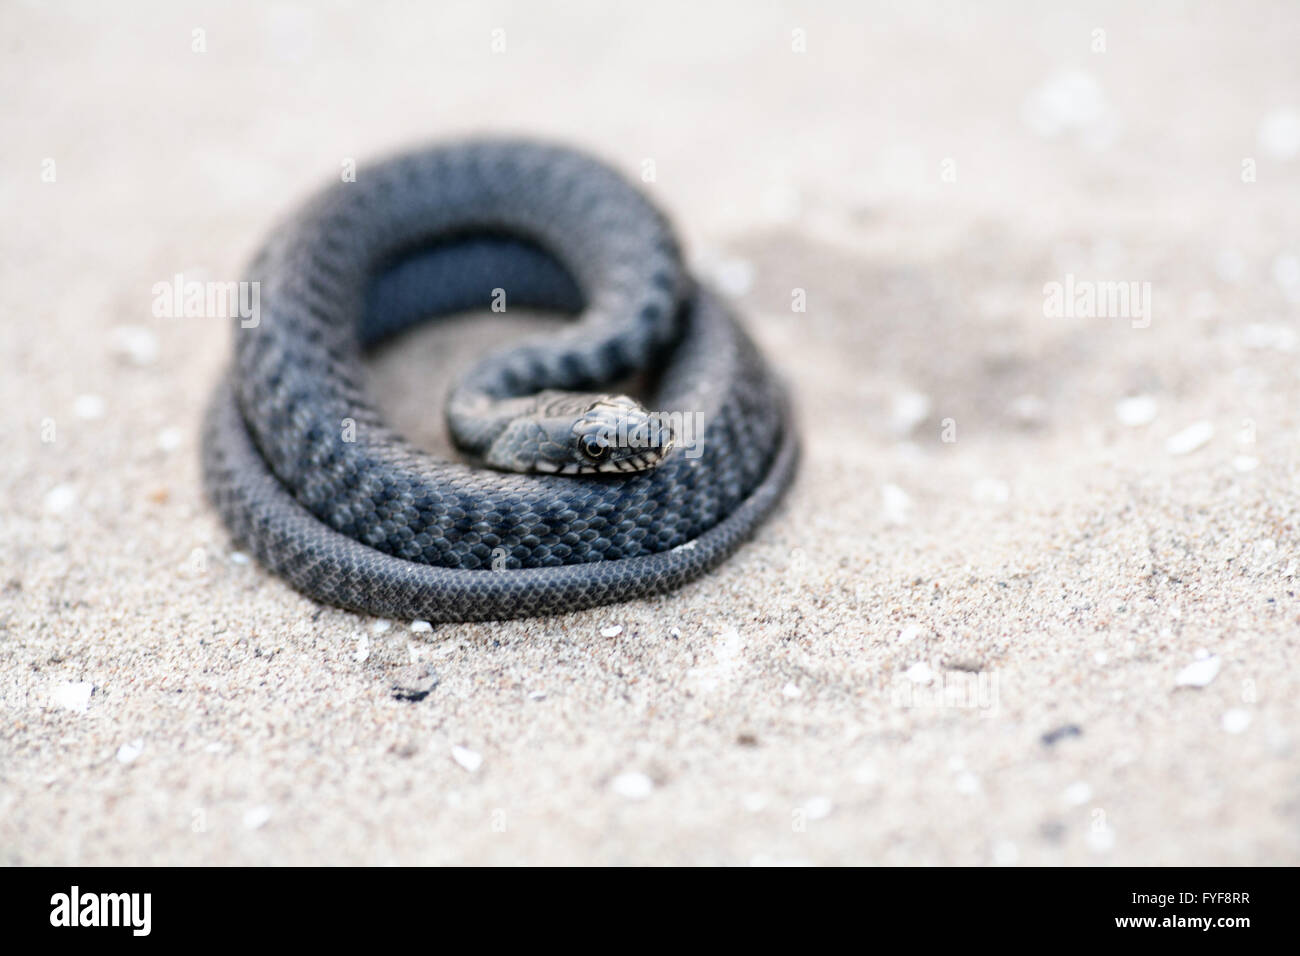 An angry serpent coiled and ready to strike. - Stock Image